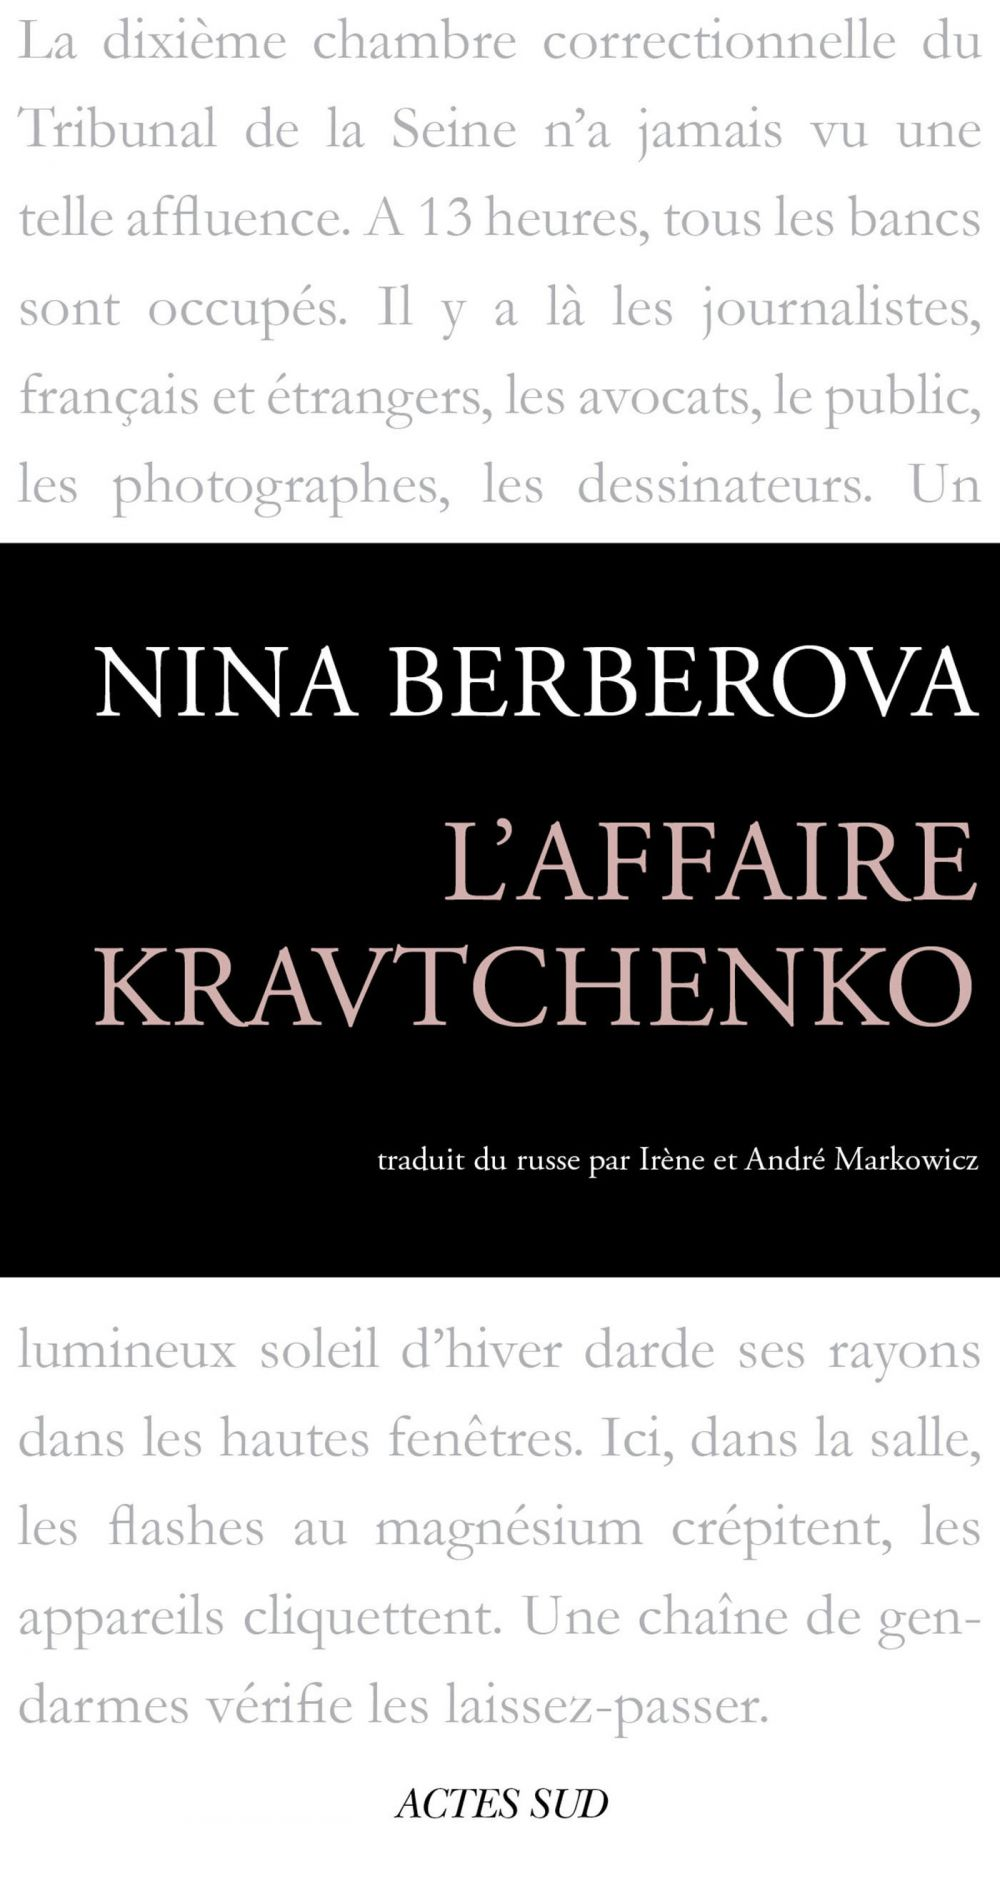 L'affaire Kravtchenko